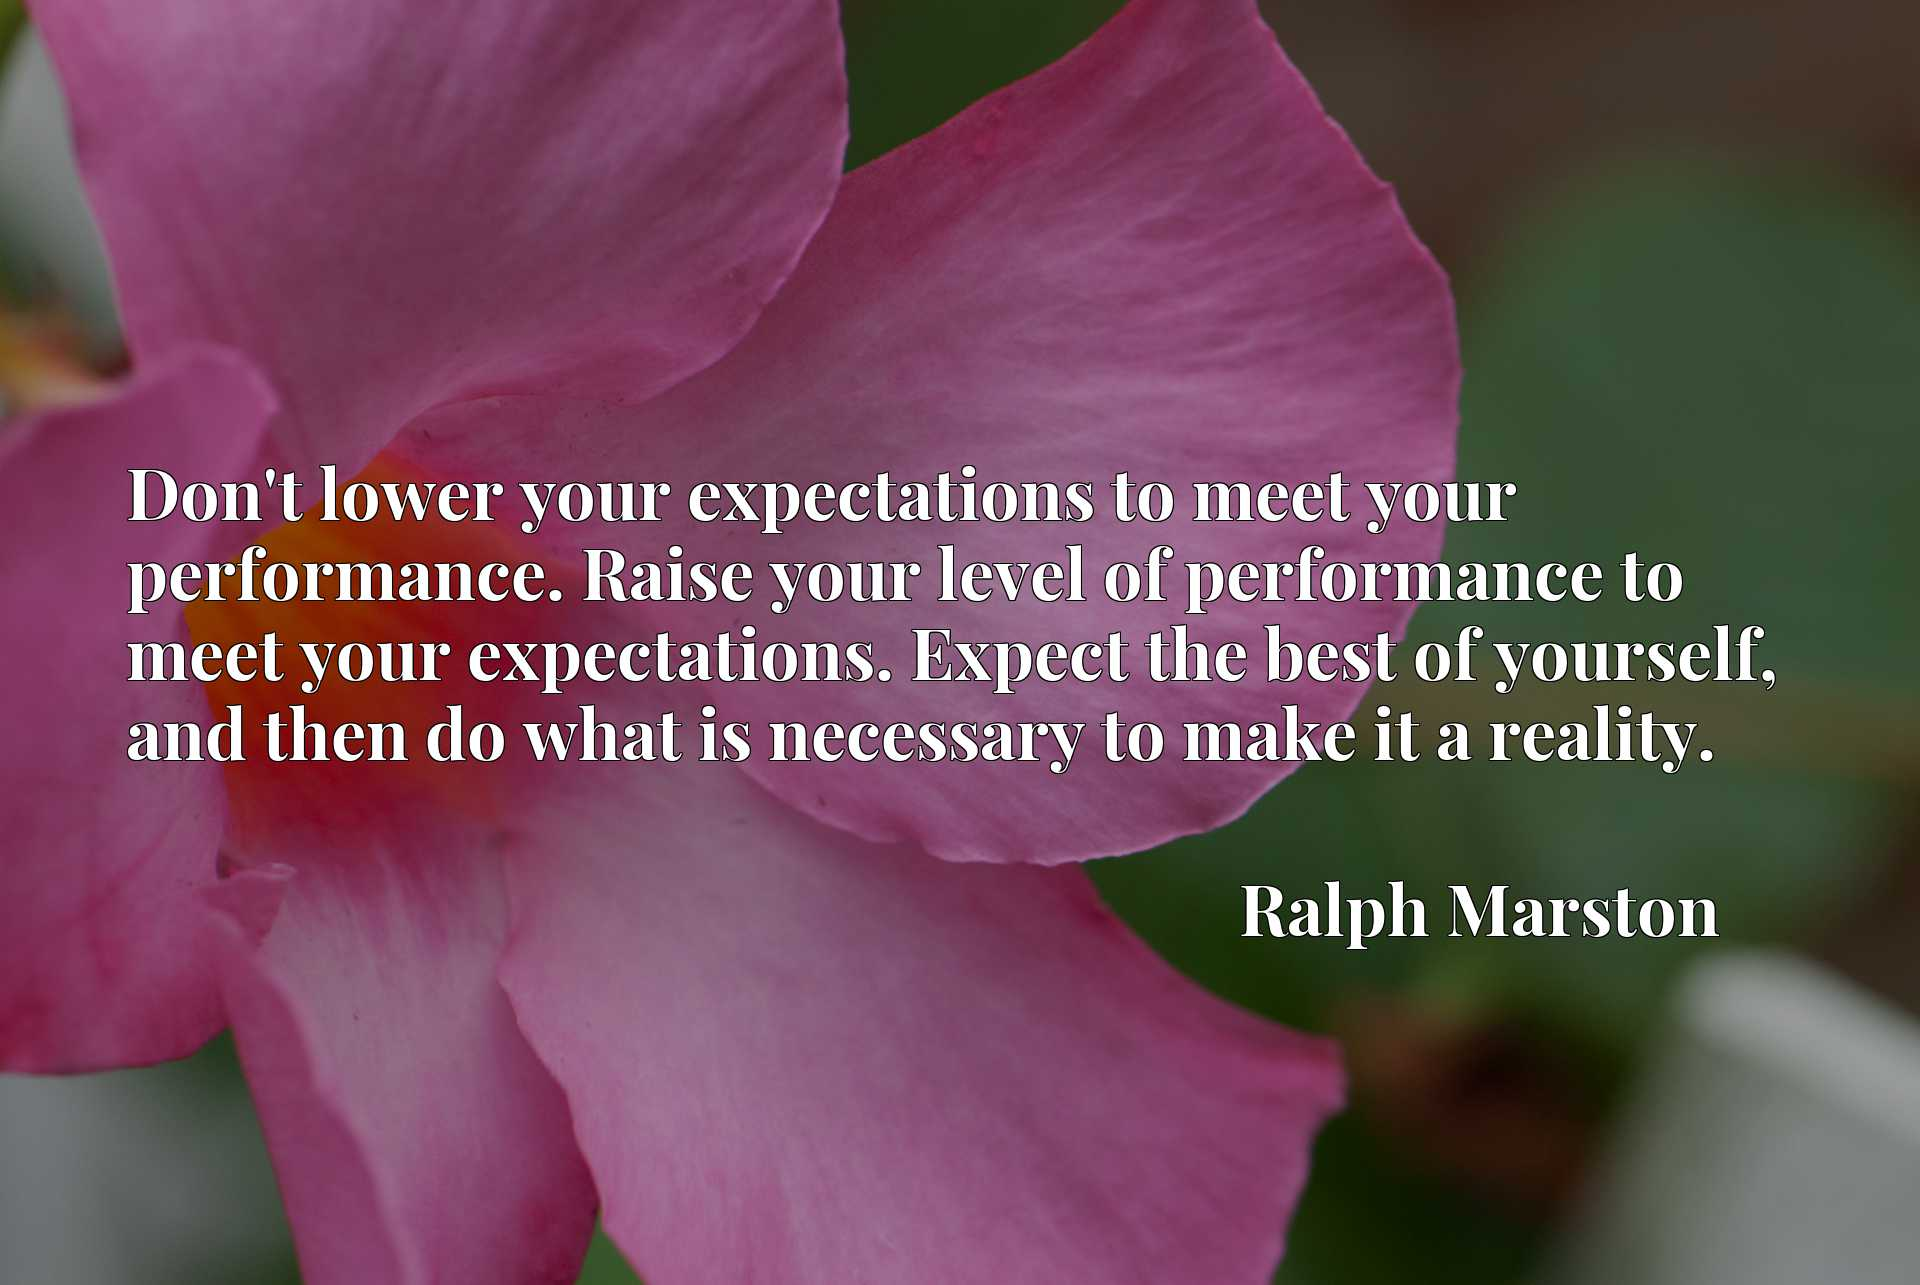 Don't lower your expectations to meet your performance. Raise your level of performance to meet your expectations. Expect the best of yourself, and then do what is necessary to make it a reality.